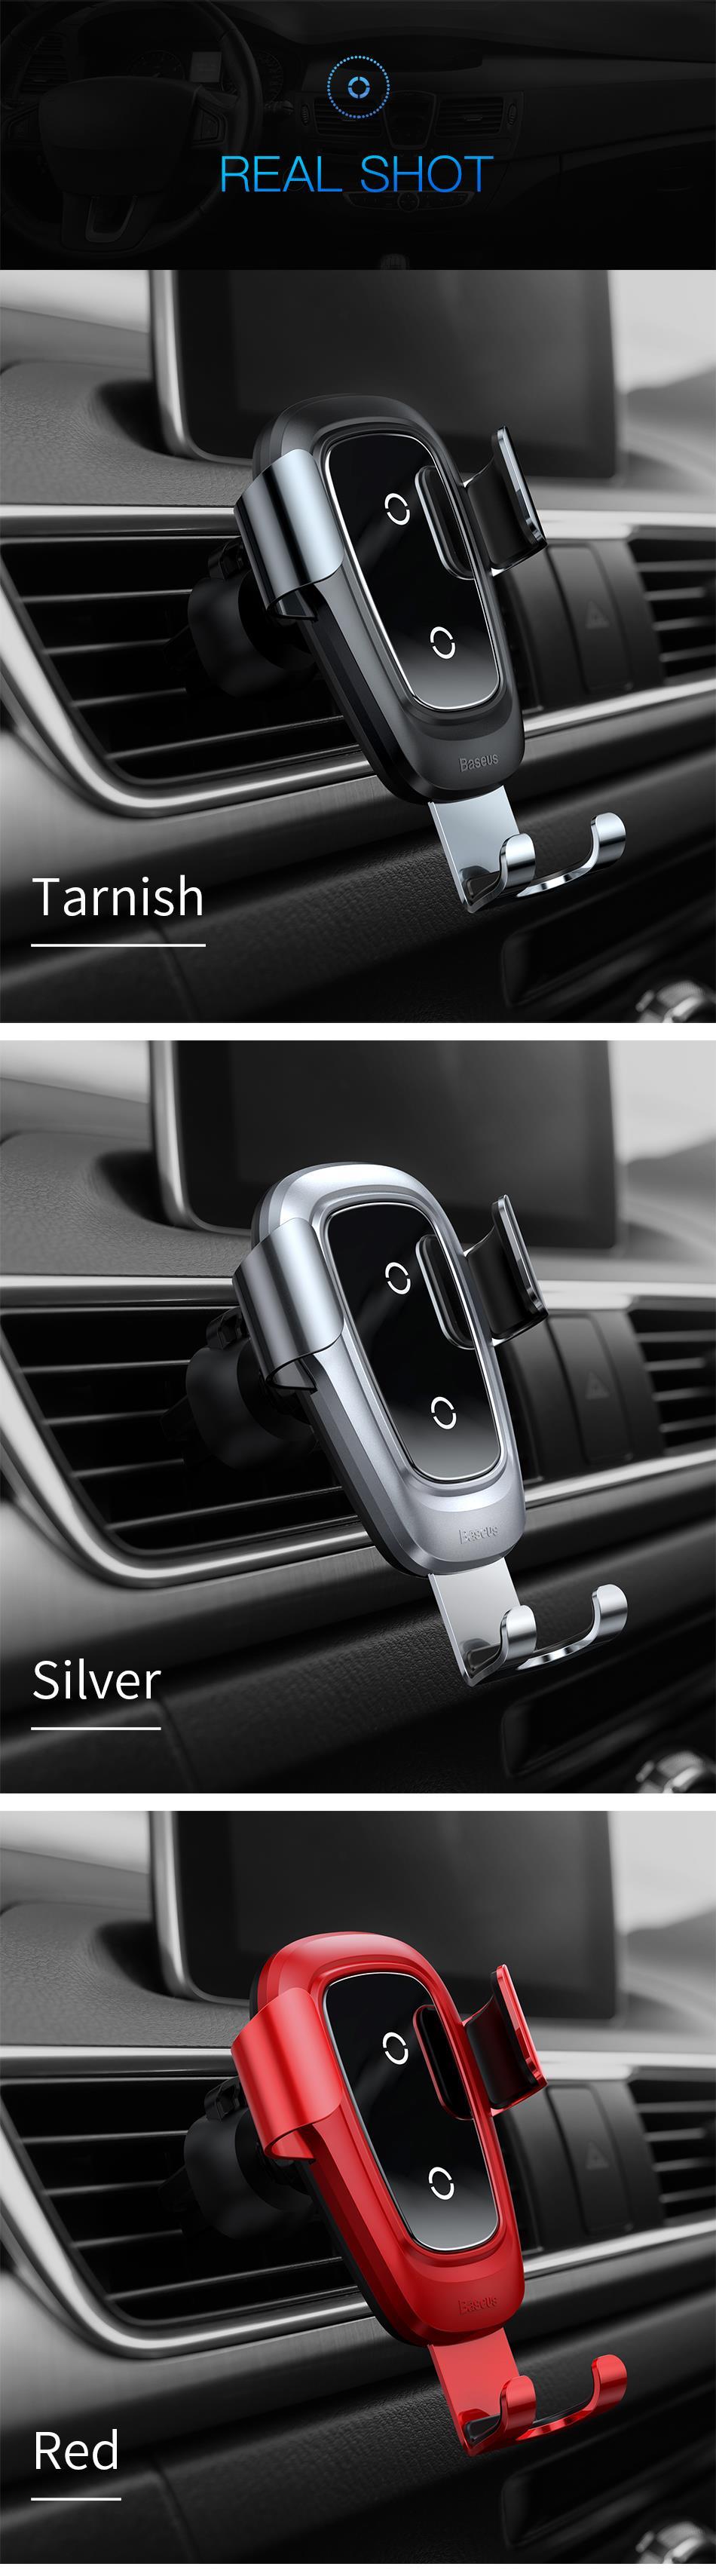 Baseus Qi Wireless Car Charger For iPhone Xs Max X 10w Fast Car Wireless Charging Holder For Xiaomi Mi 9 Mix 3 2s Samsung S10 S9 18